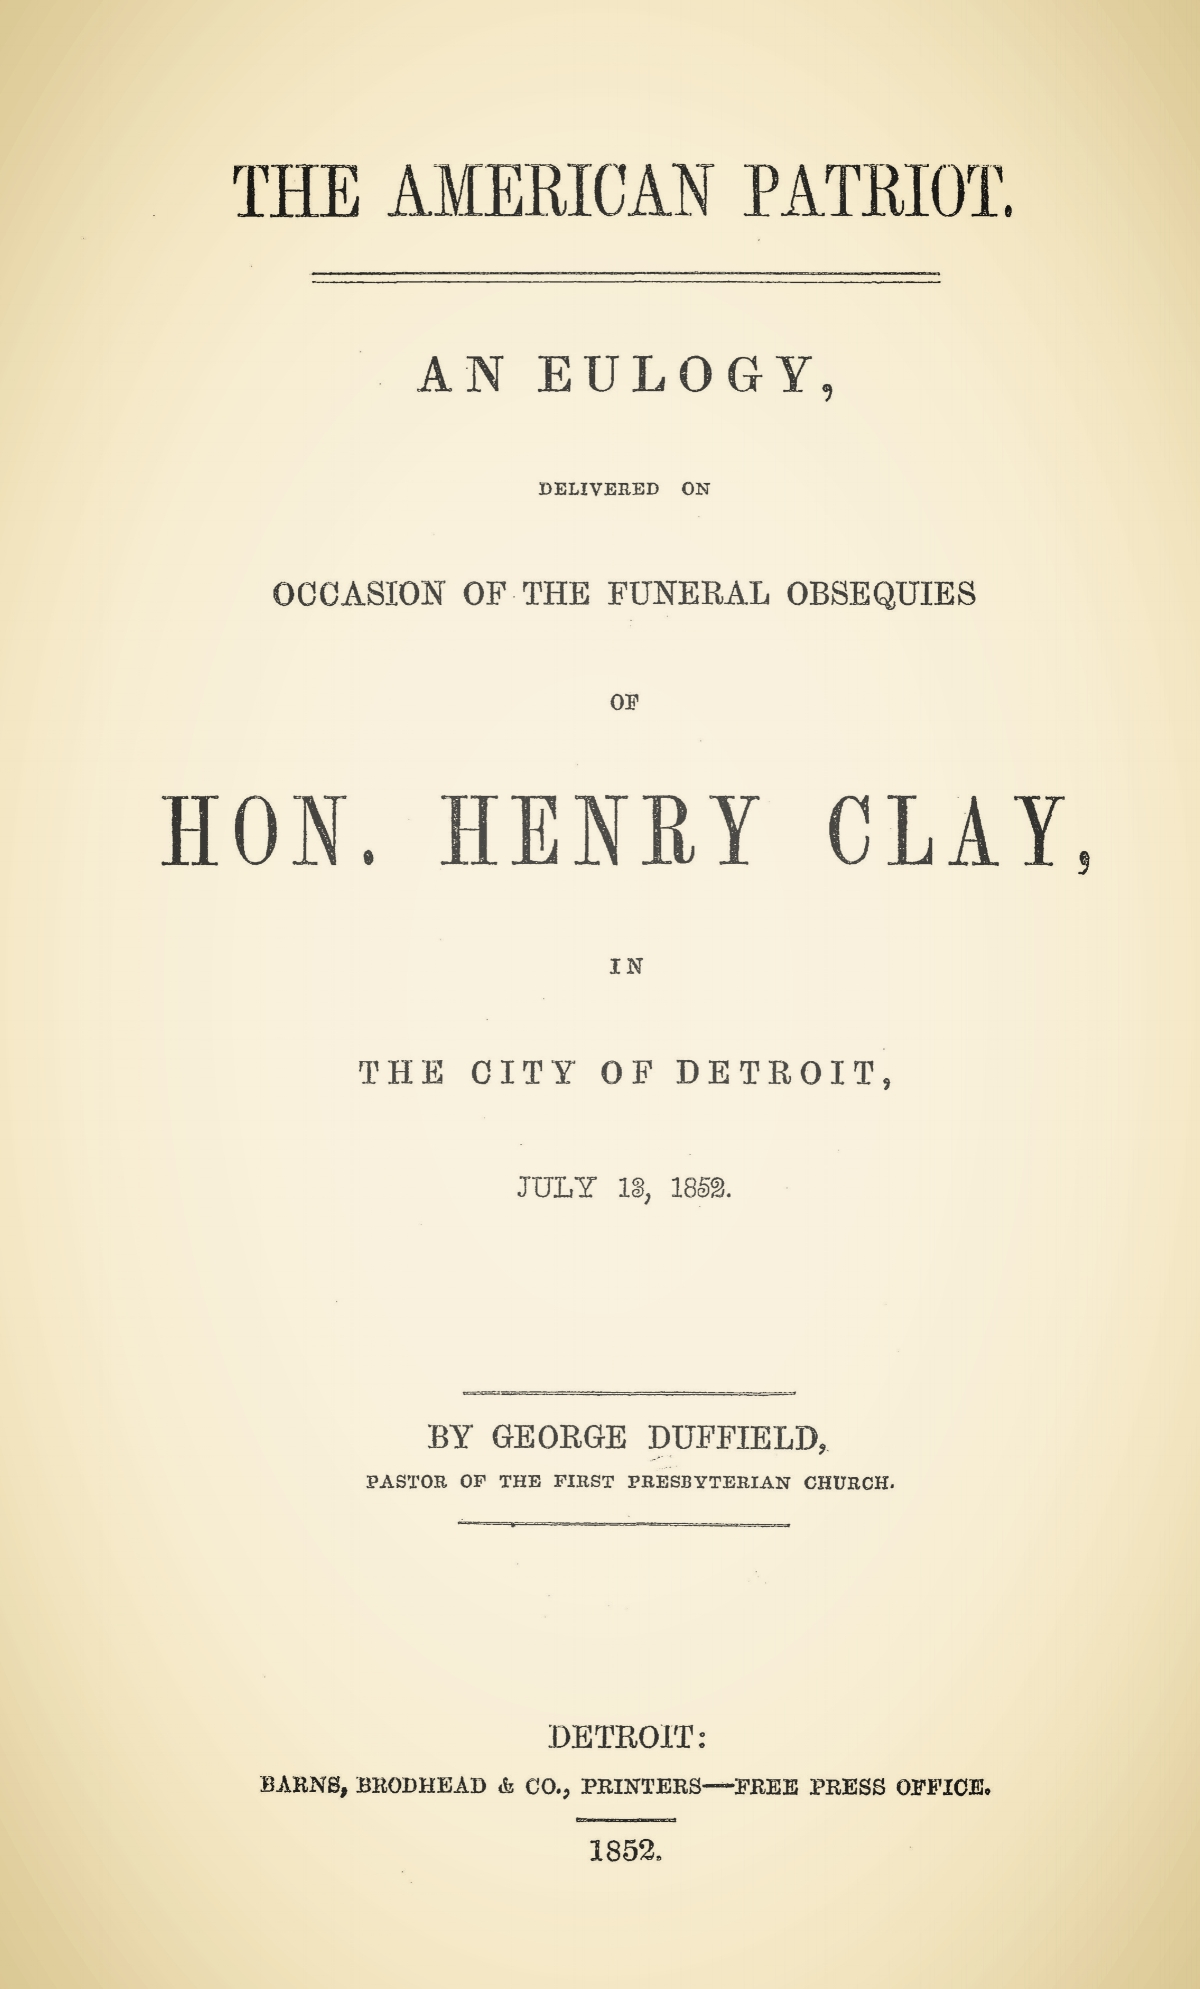 Duffield, IV, George, The American Patriot Title Page.jpg